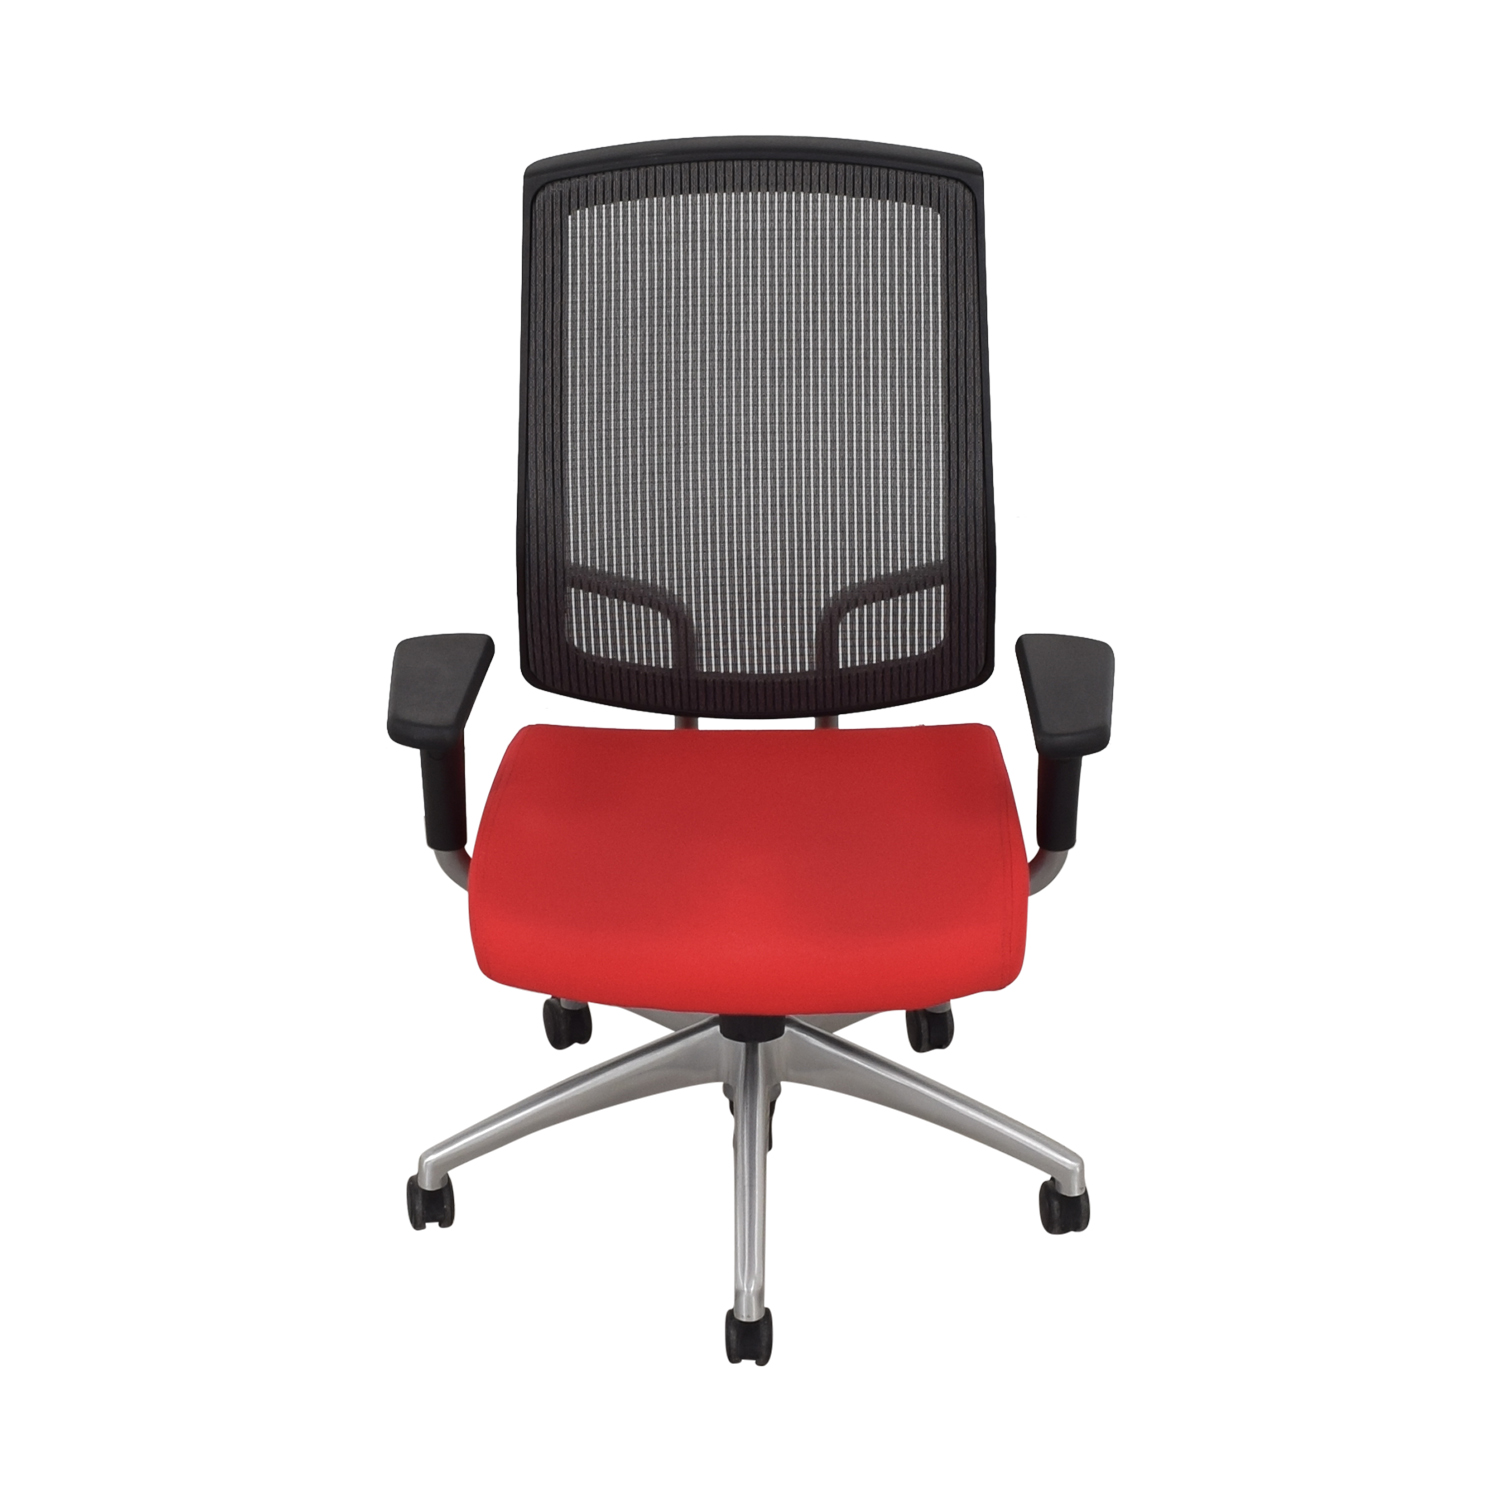 SitOnIt Focus High Back Office Chair / Home Office Chairs